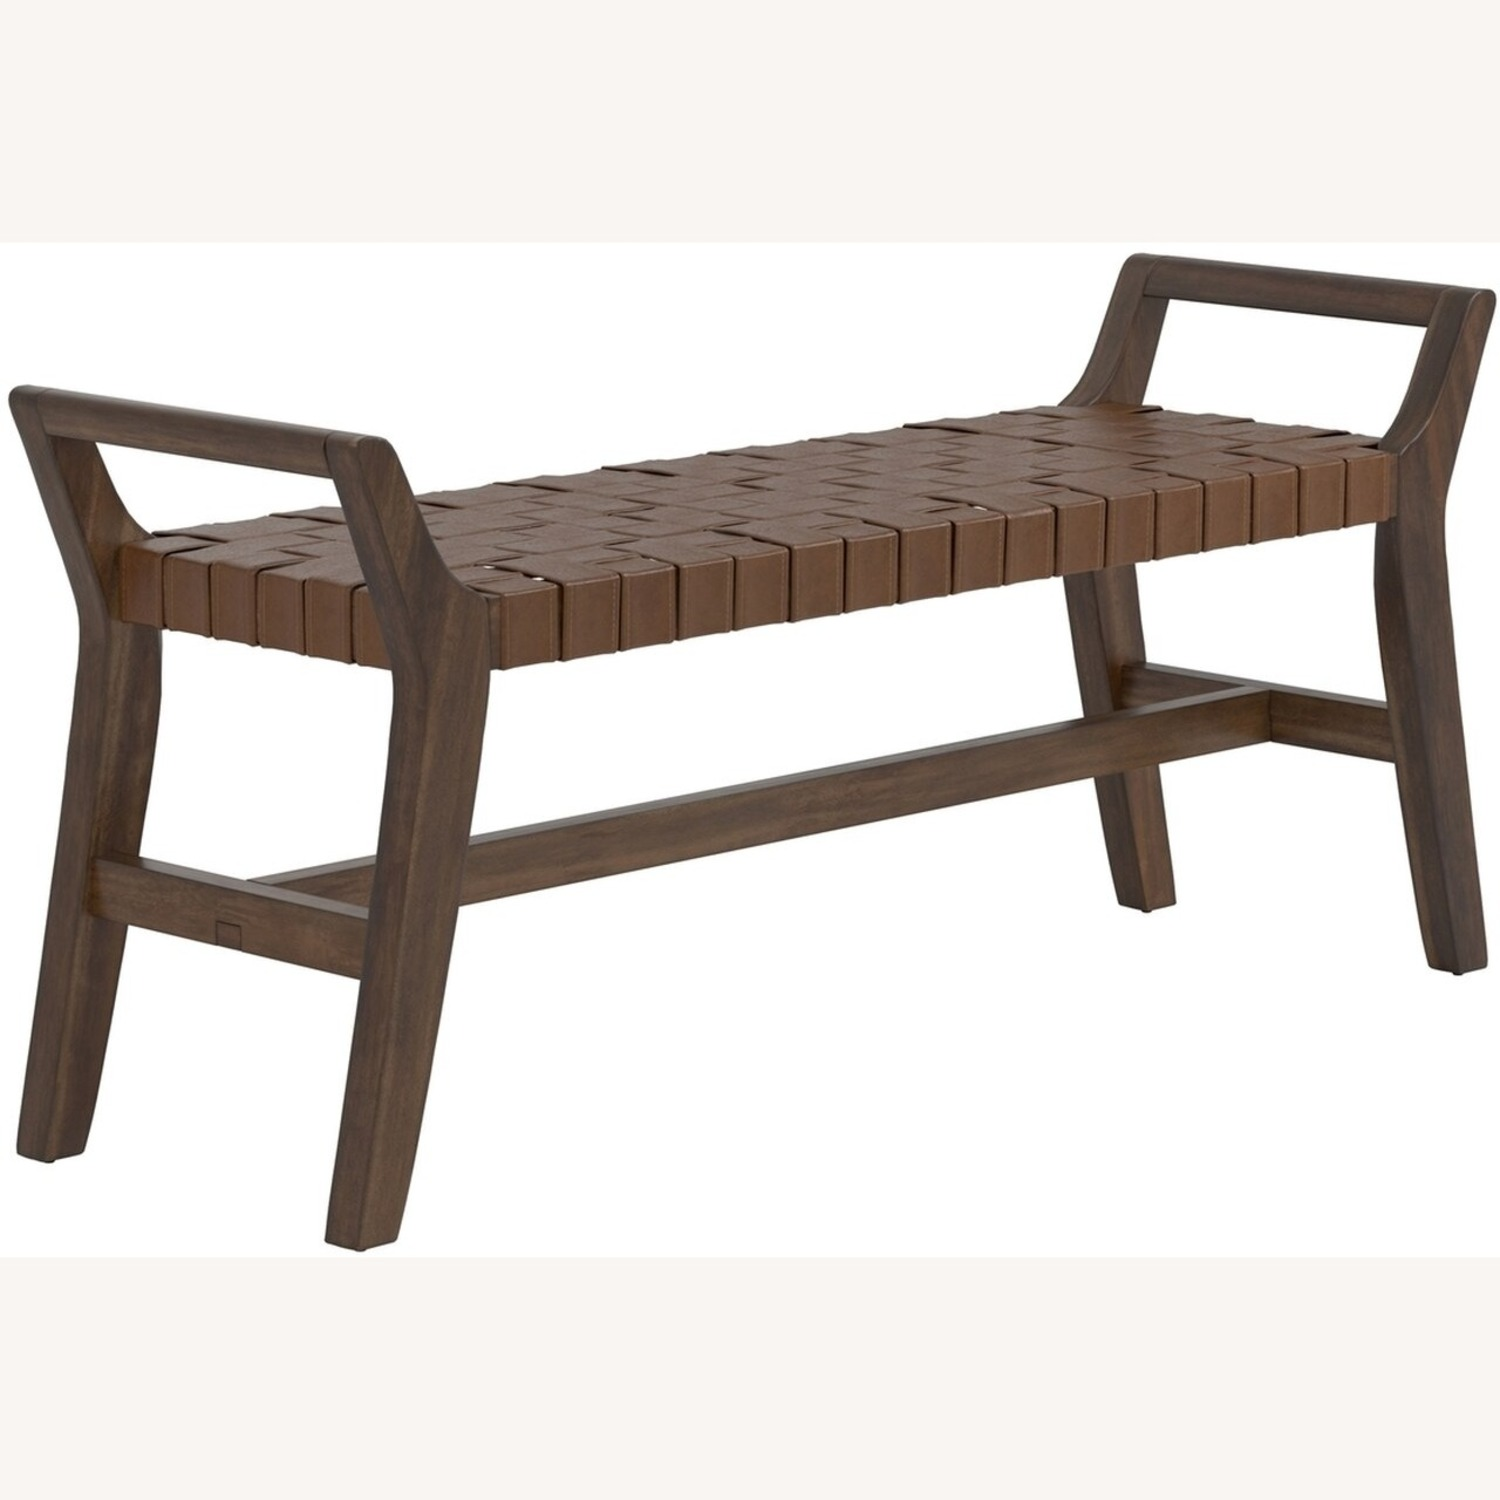 Modern Bench Made W/ Woven Brown Leatherette - image-0